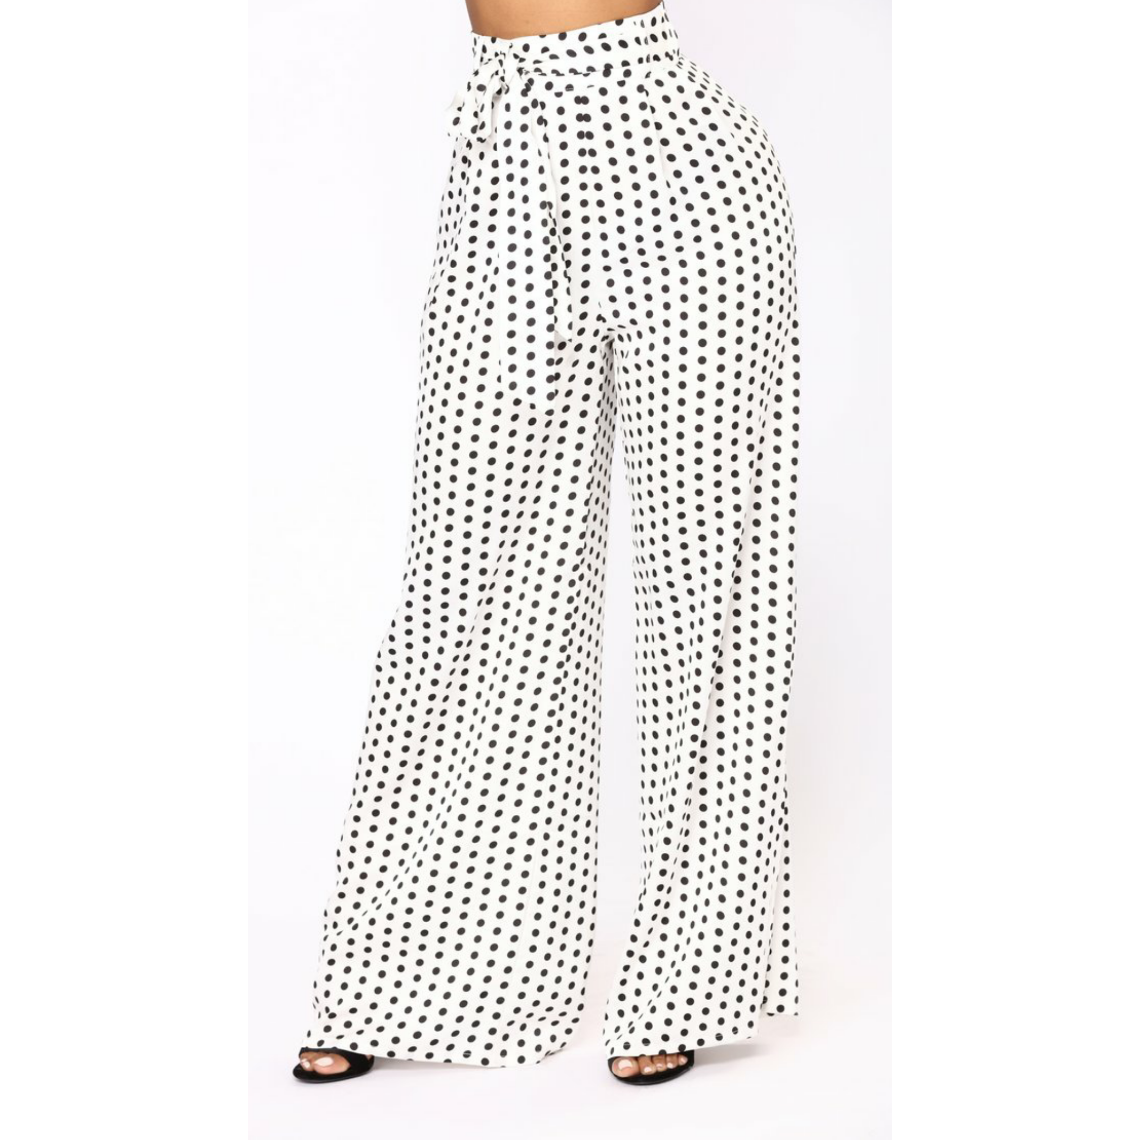 Polka Dot Pants (NEW)